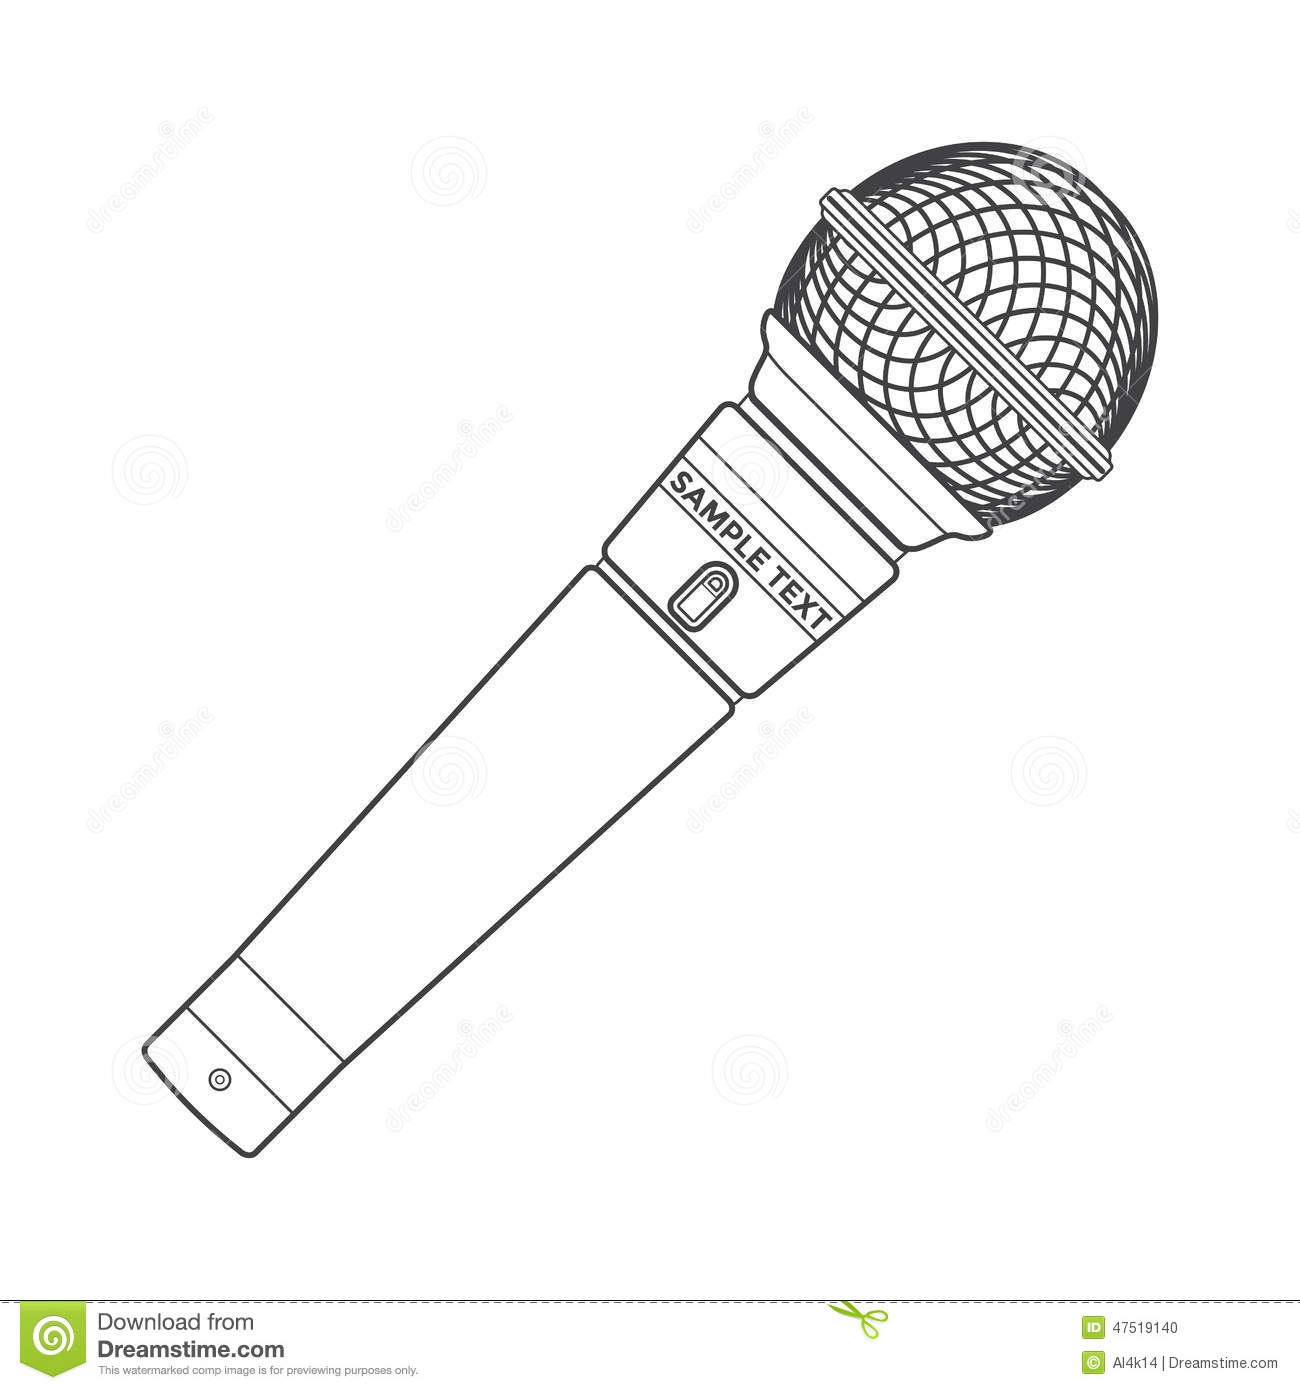 Outline stage microphone stock vector. Illustration of